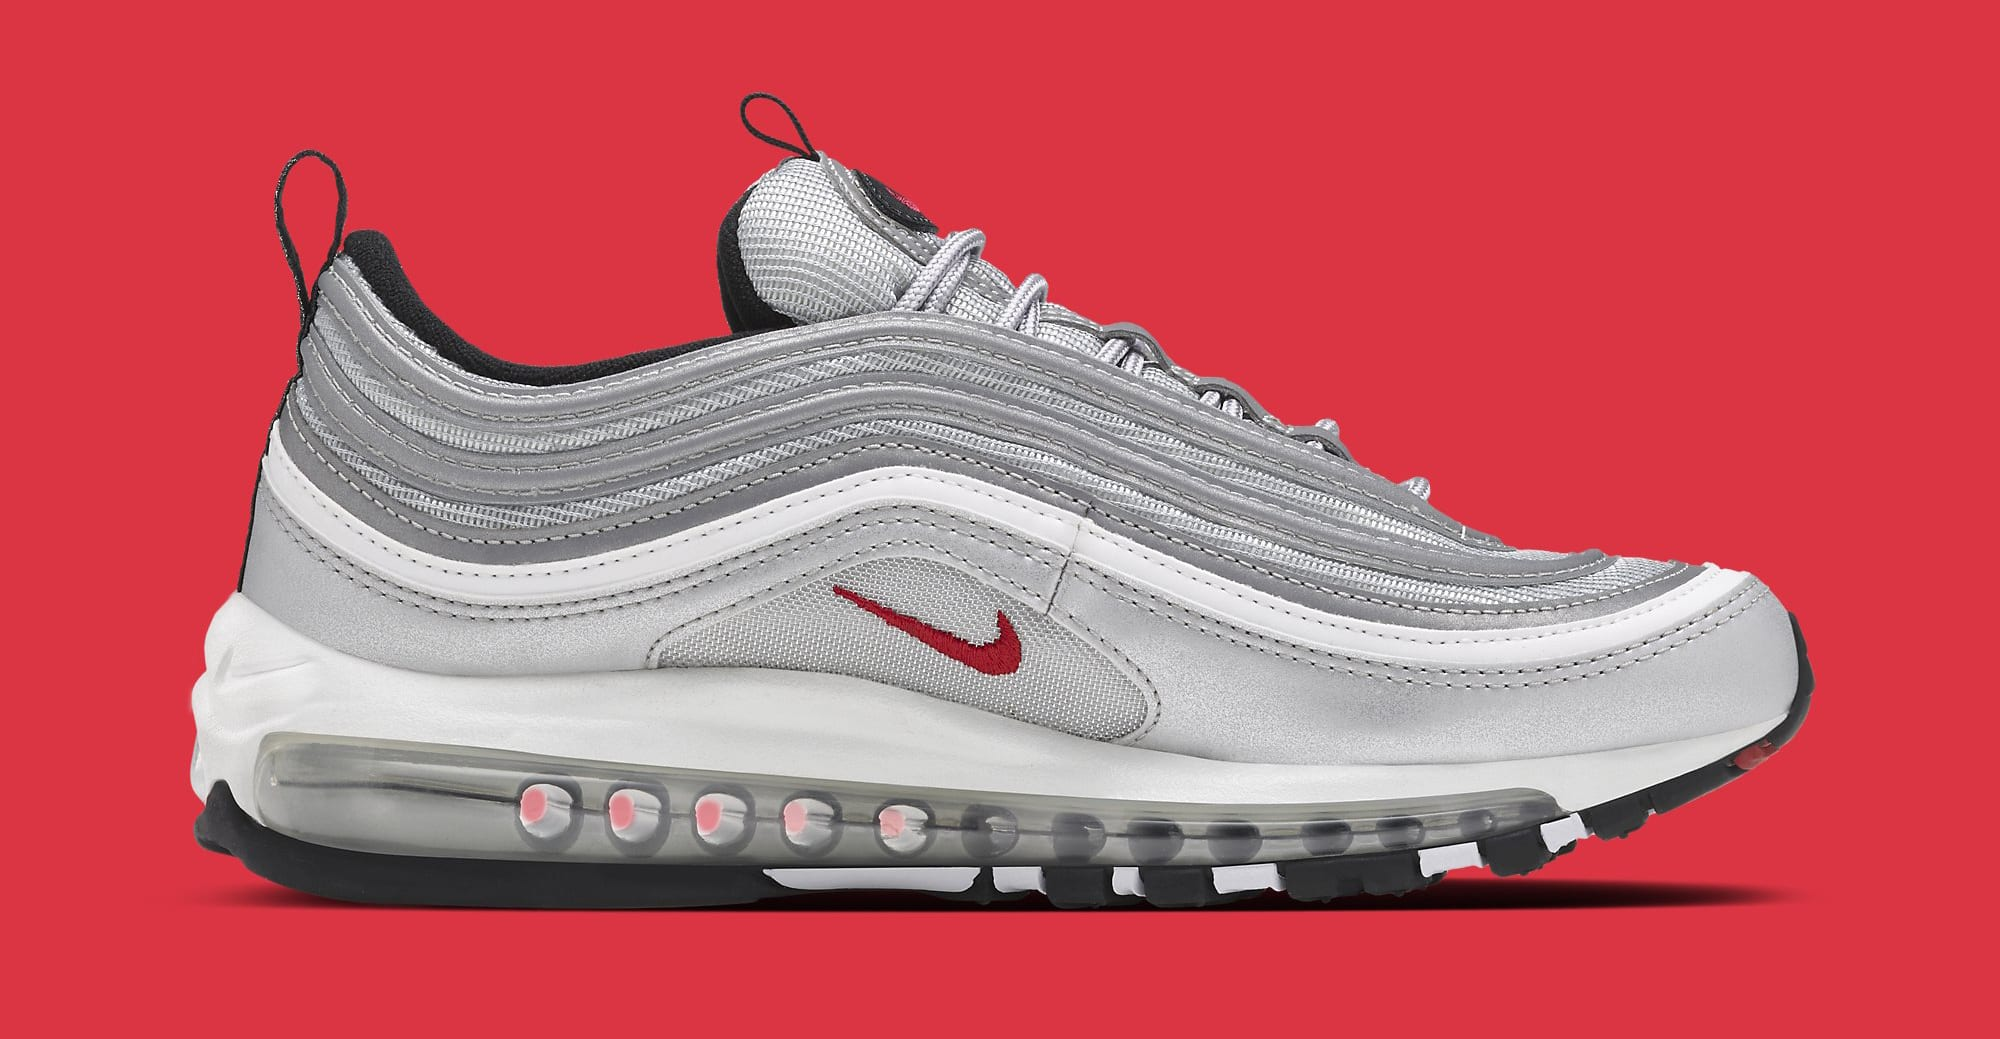 best service 3fe23 7a7d5 OG Silver Nike Air Max 97 2017 Release Date | Sole Collector